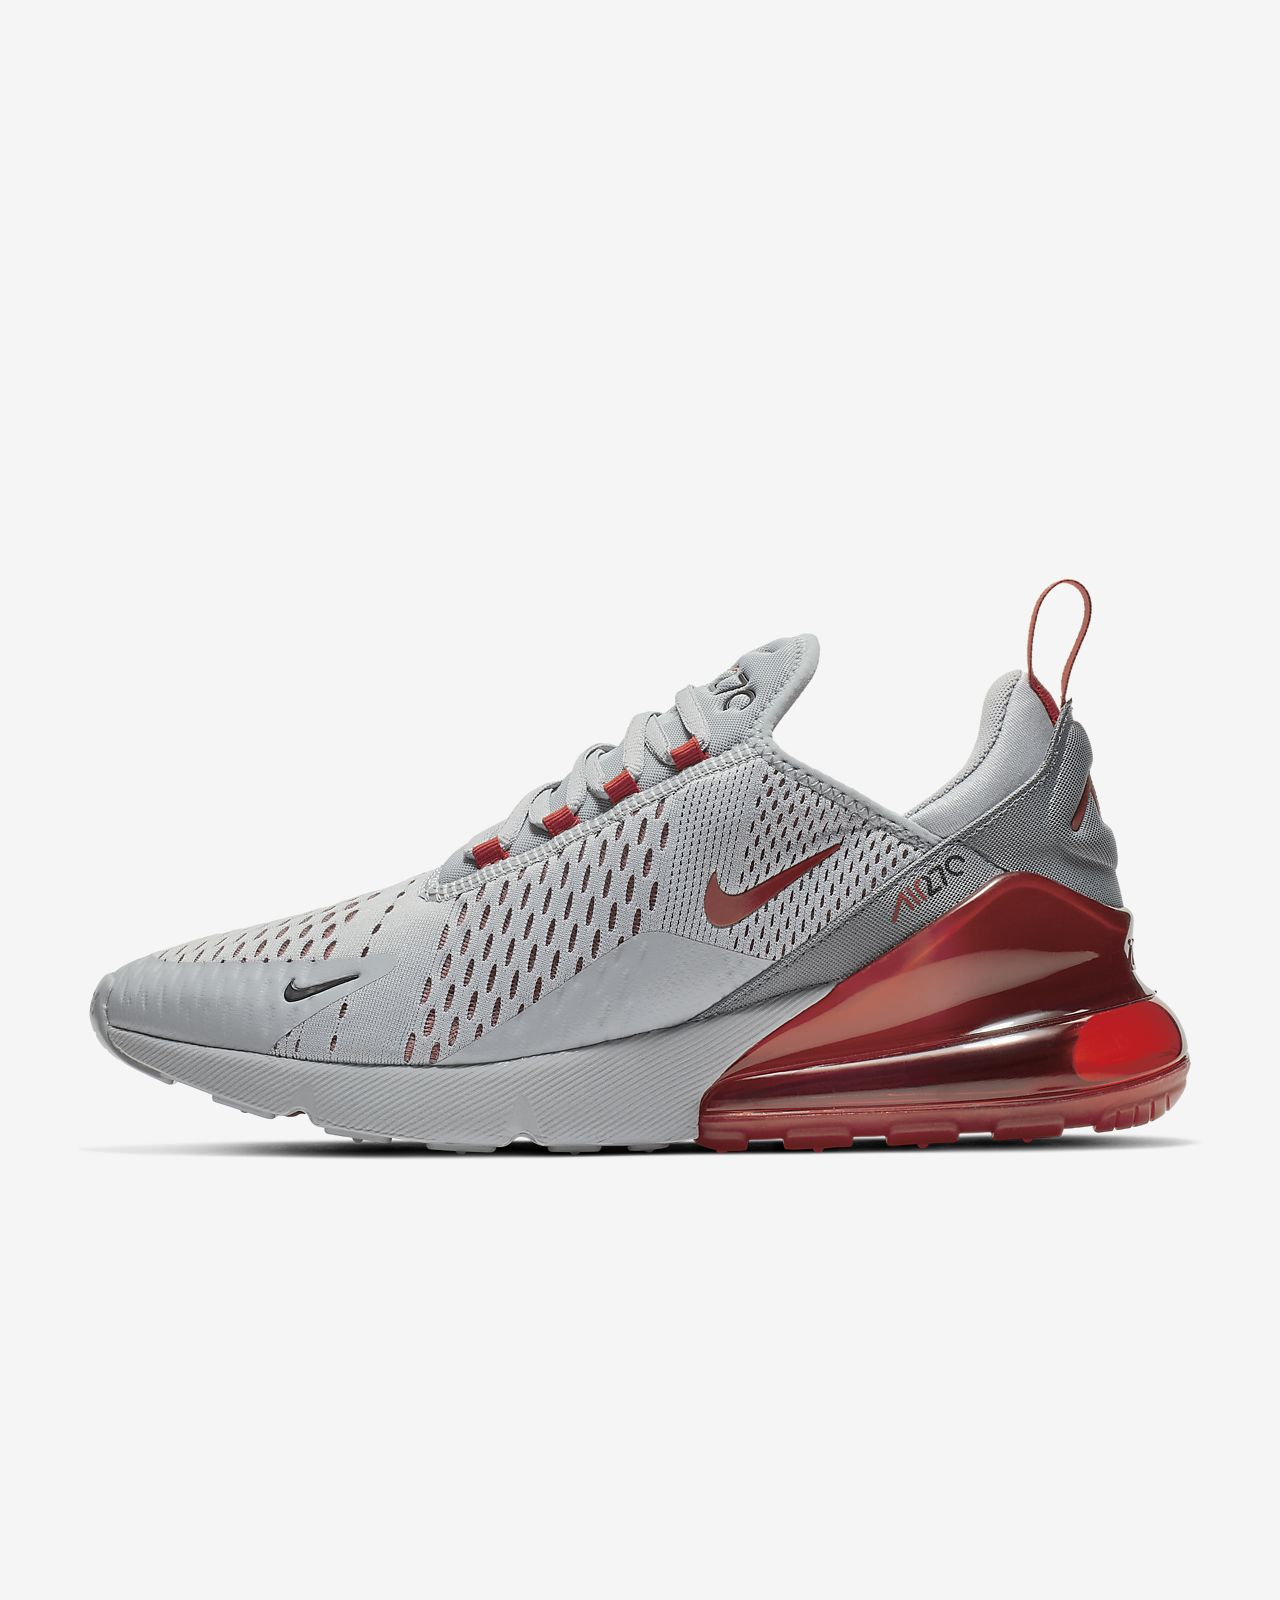 meet dc8d7 32289 Men s Shoe. Nike Air Max 270